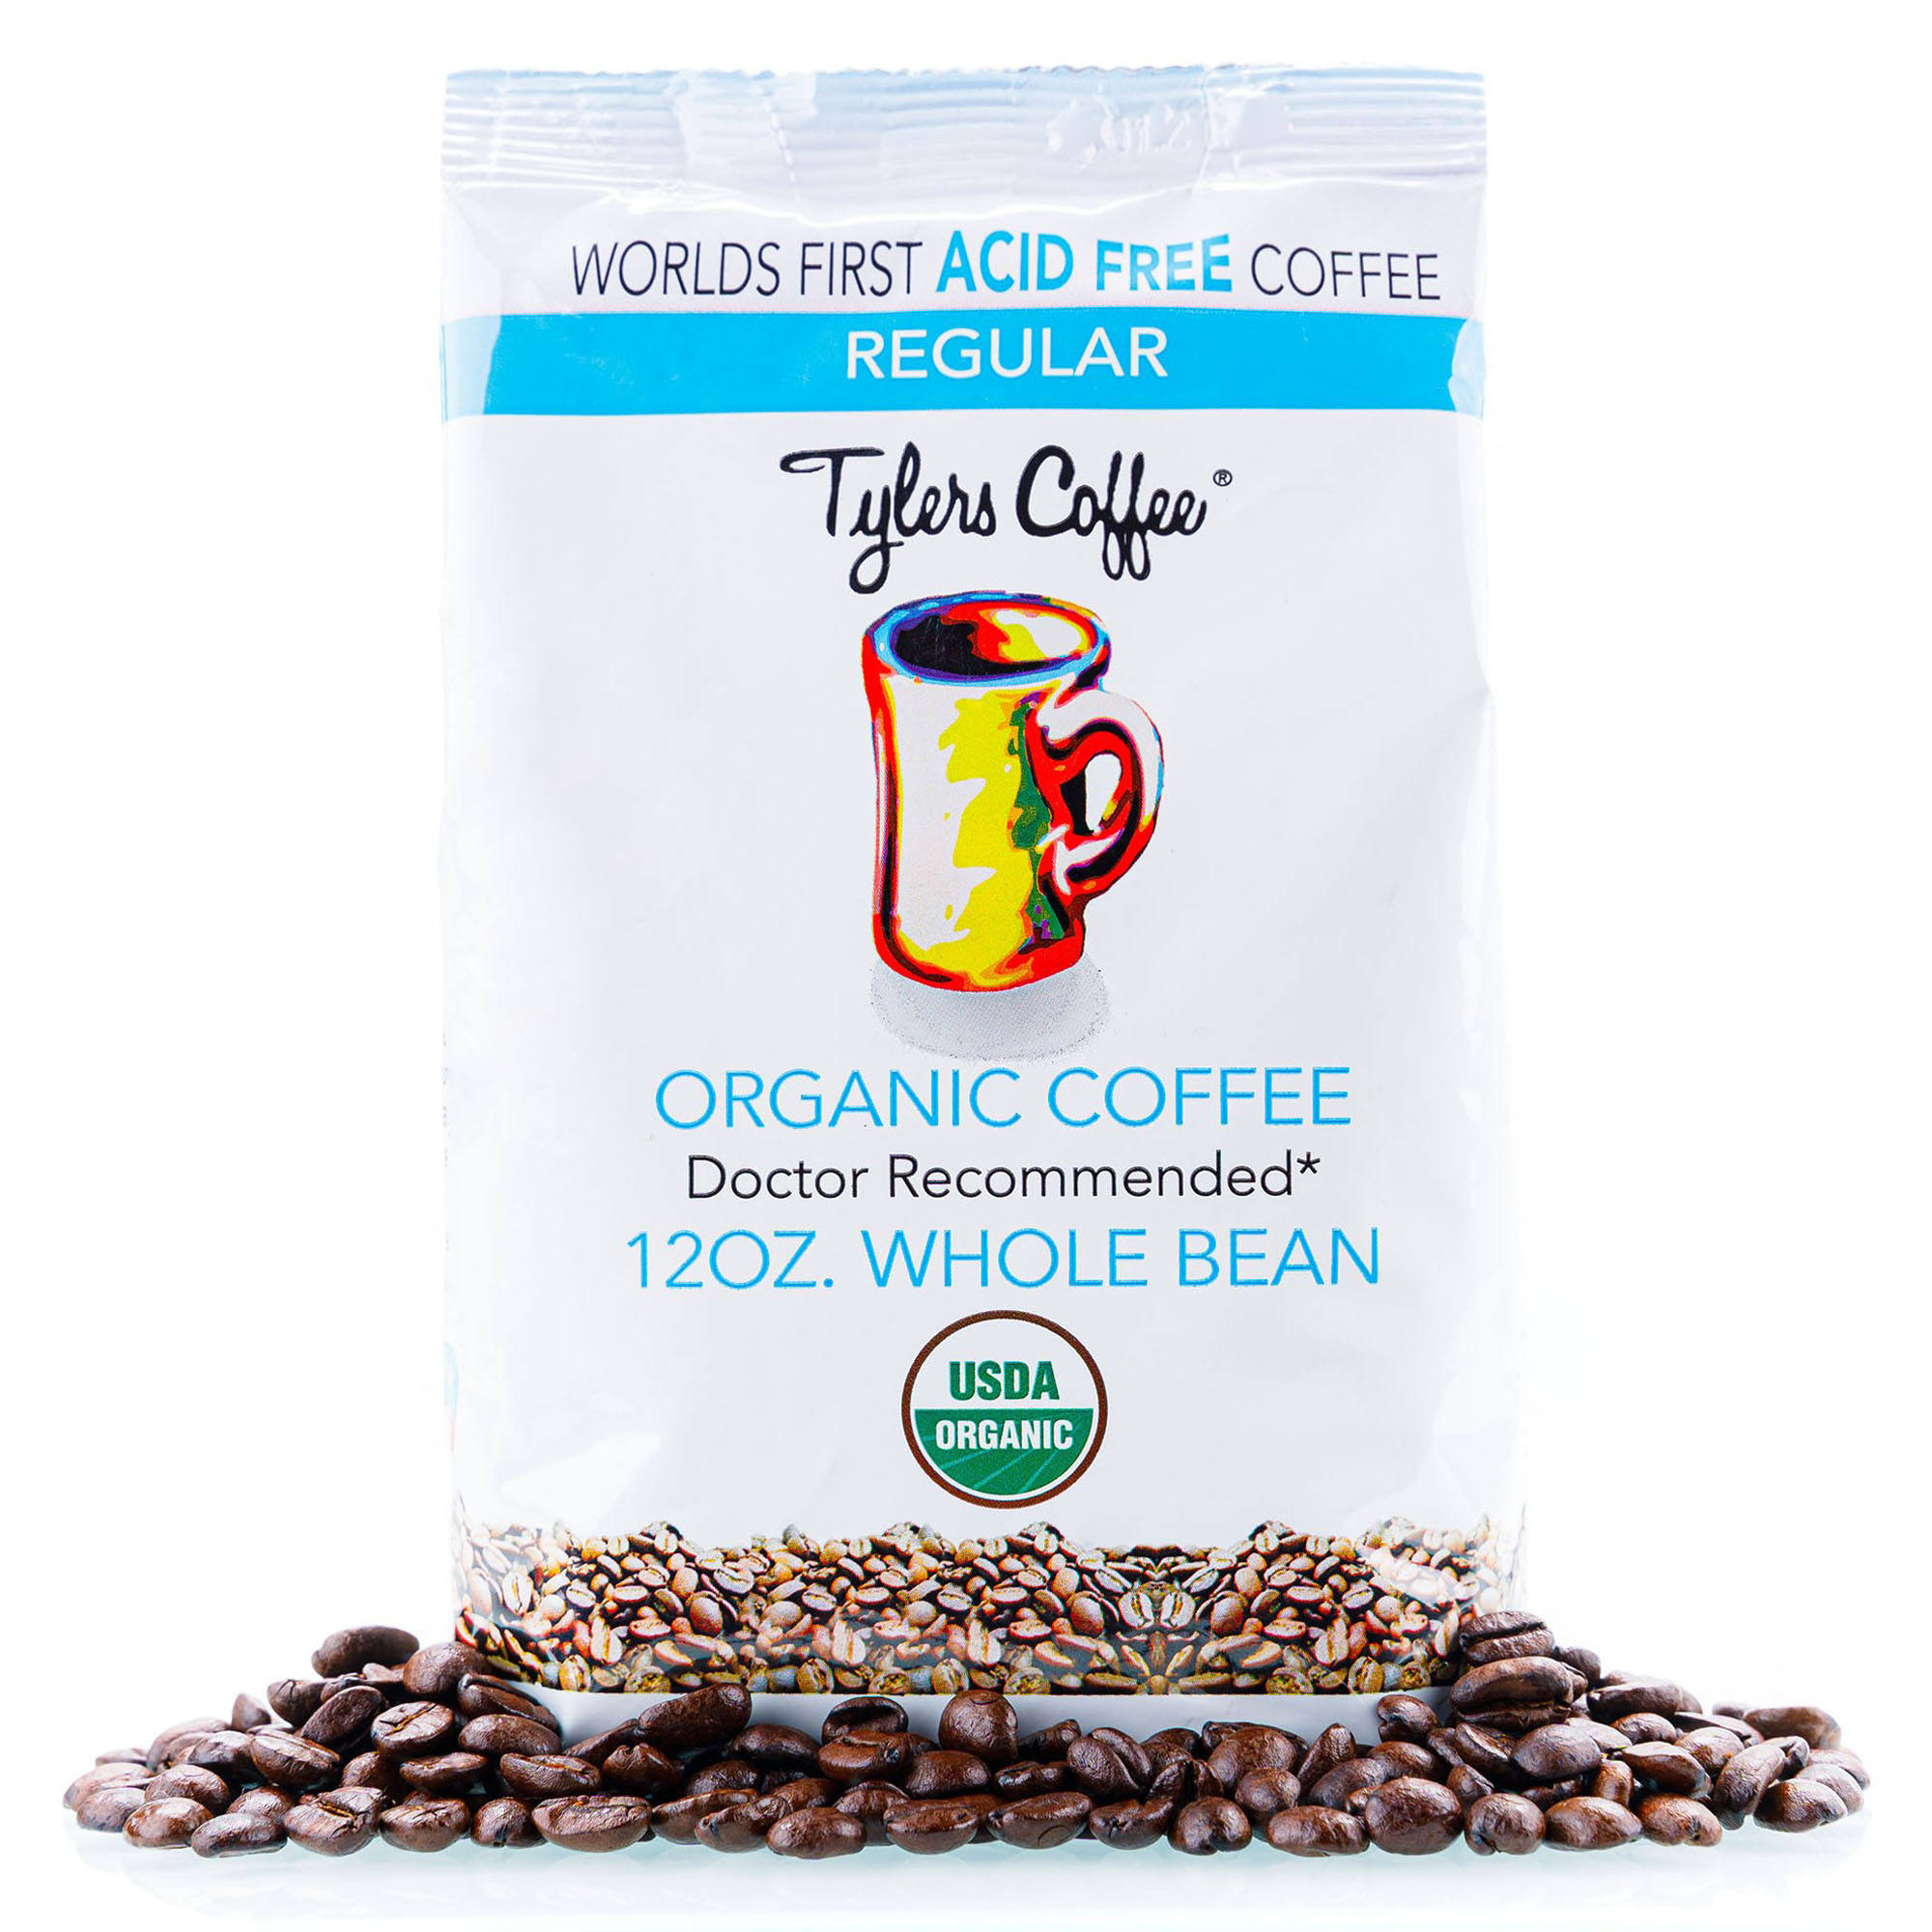 USDA Organic Certification, Made in United States of America Regular whole bean (12oz bag)